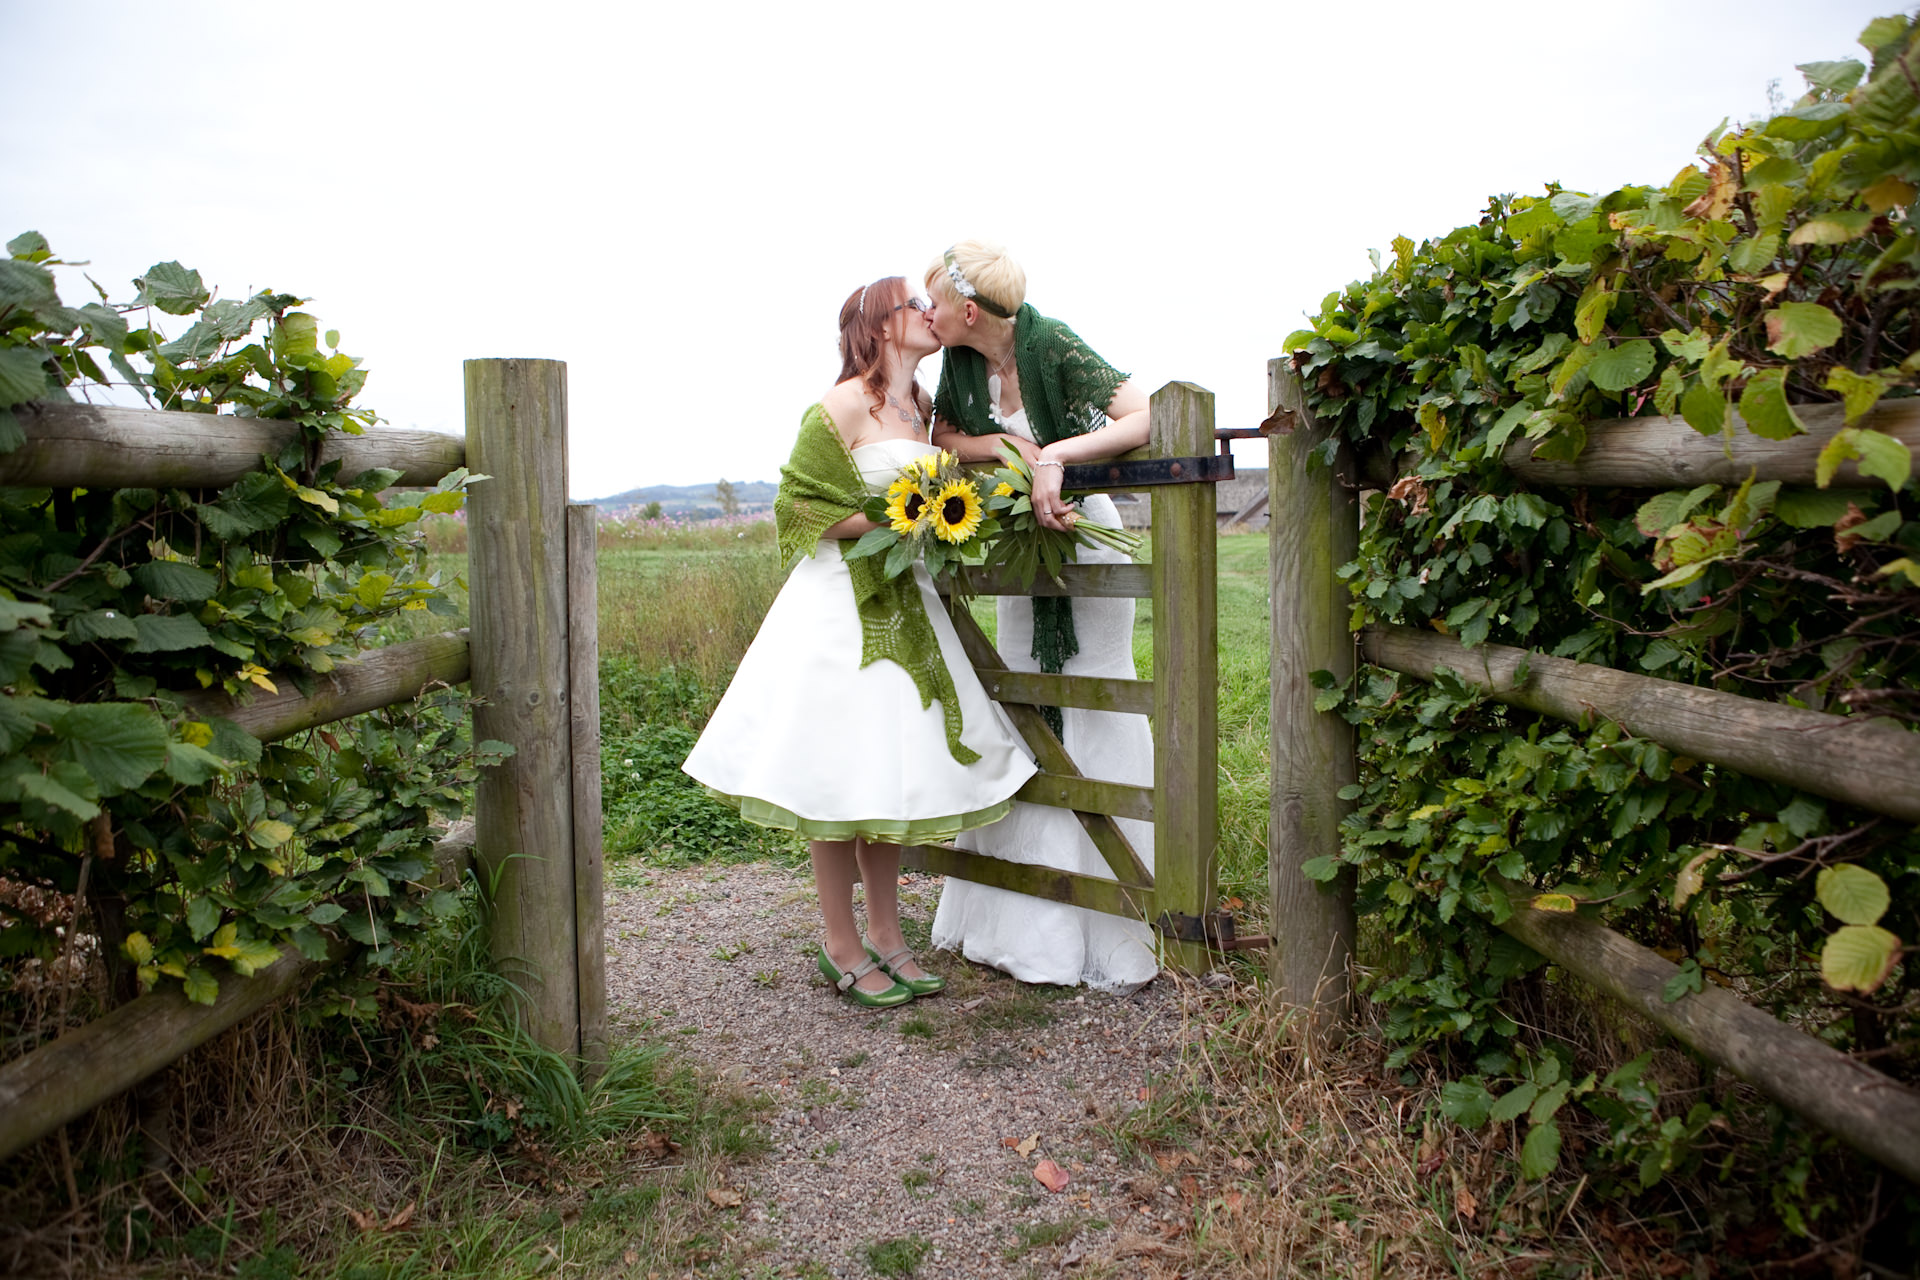 Ruth and Laura handfasting. A selection of the best wedding photos from 2014, aiming to be a Devon wedding photographer in 2015!! This selection of fab weddings includes lots alternative weddings; farm weddings, handfastings, outdoor weddings, beach weddings and tipi weddings